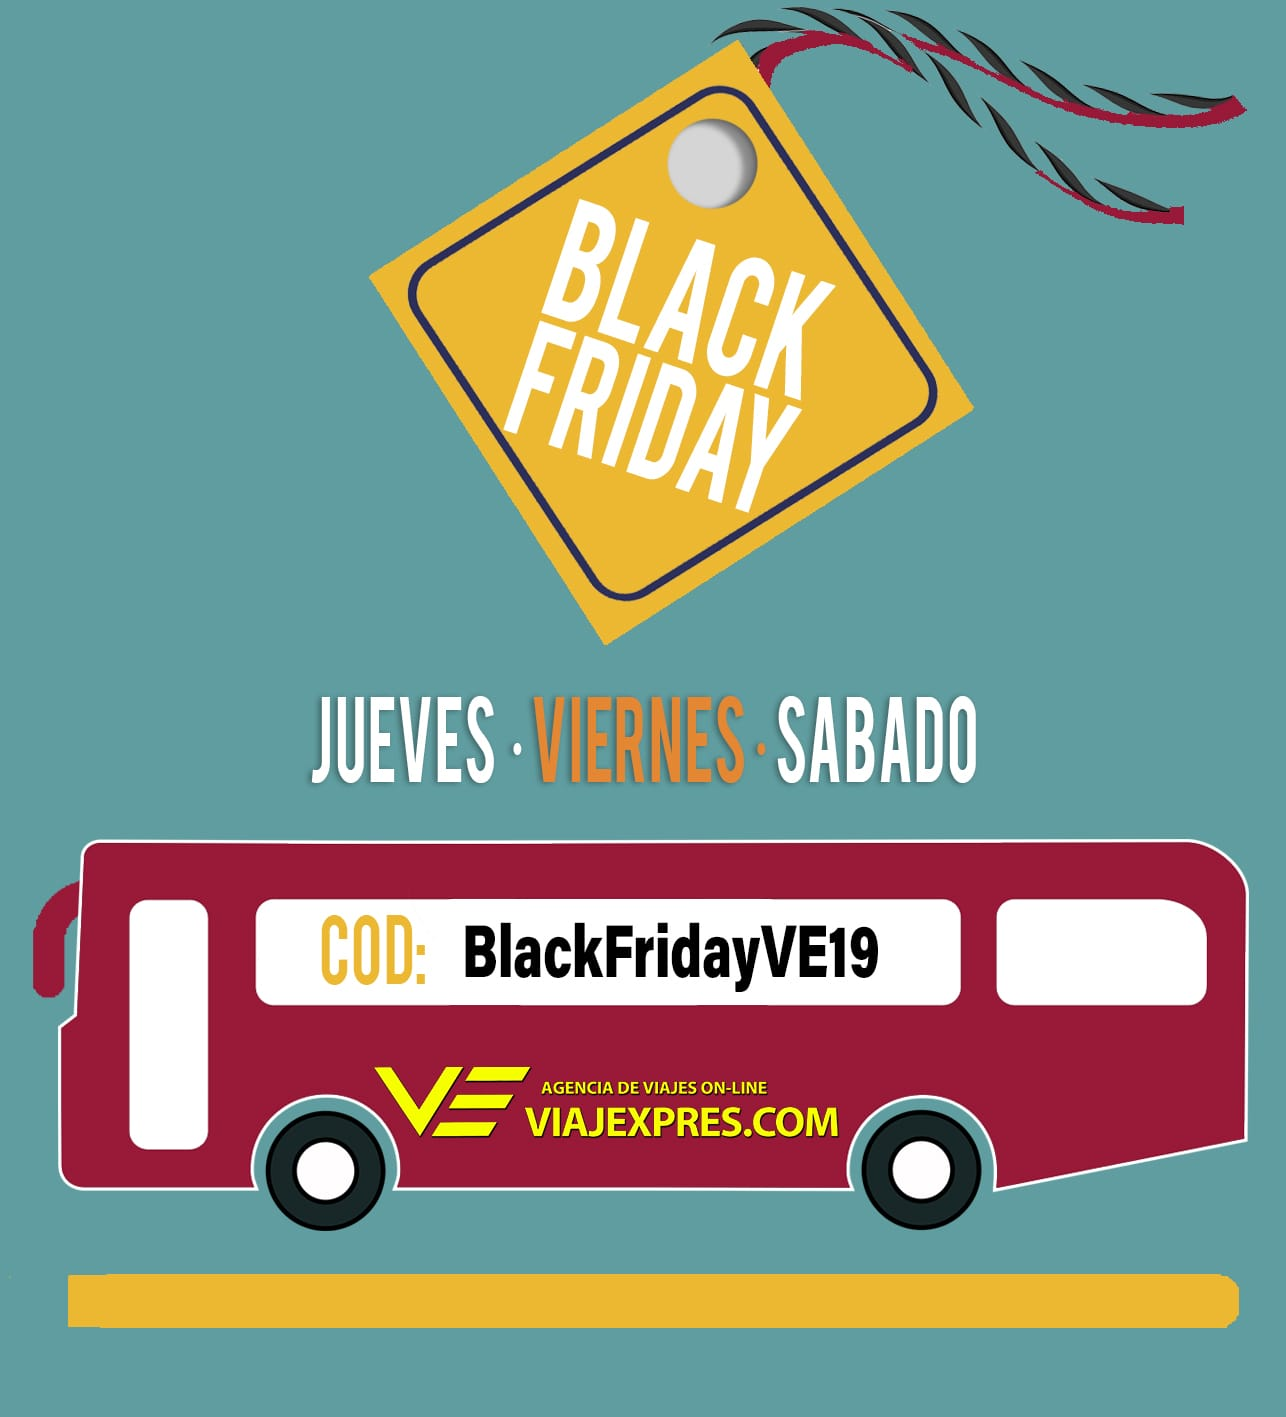 ¡¡¡Black Friday en Viajexpres.com!!!